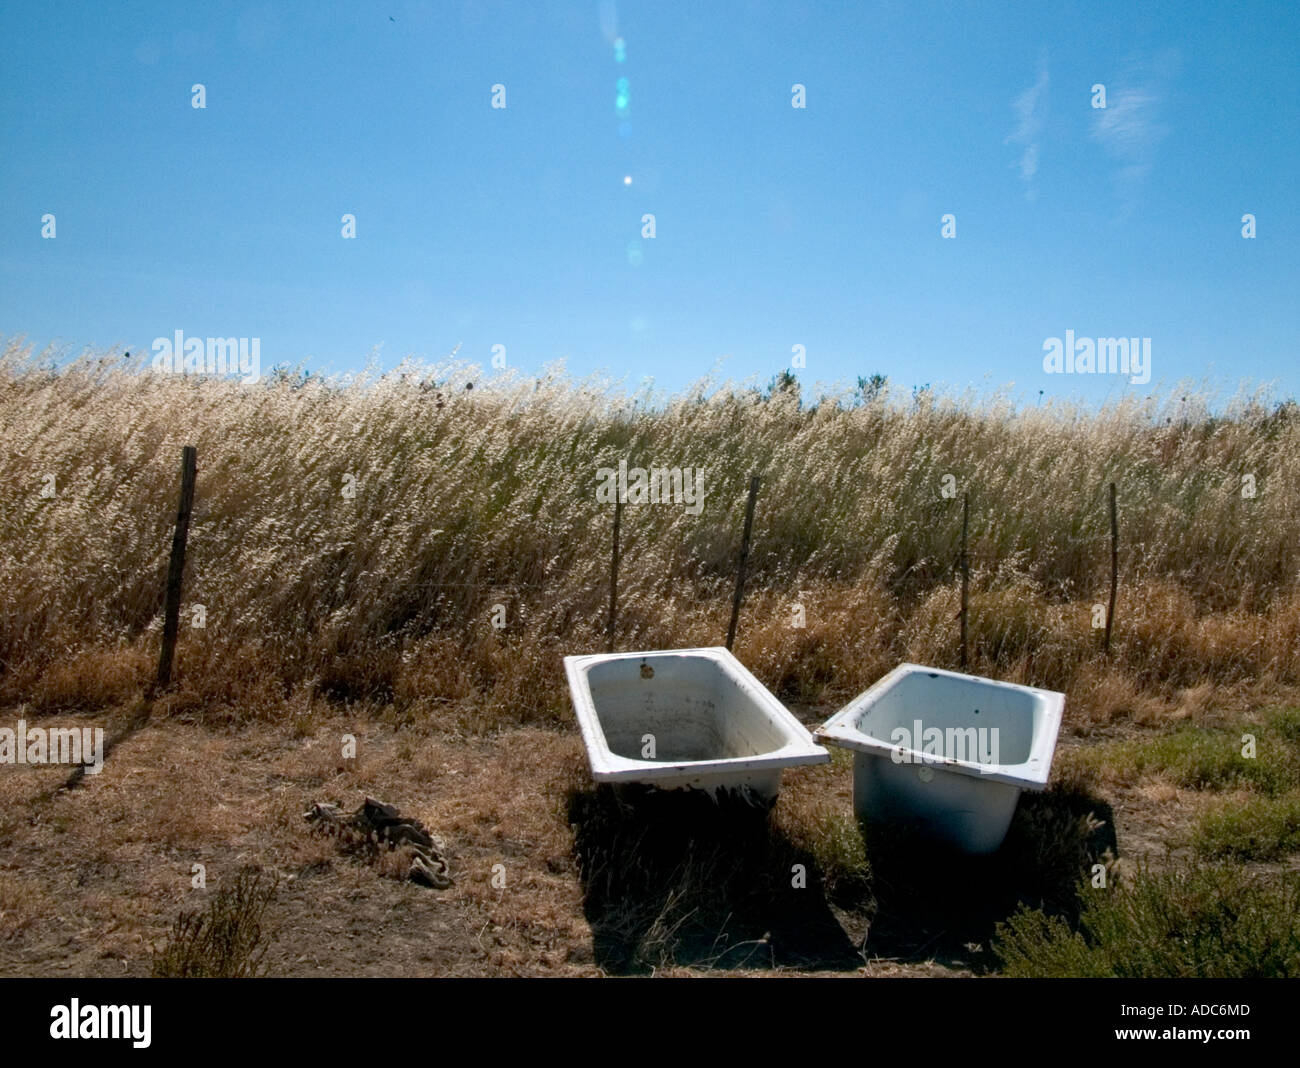 two old bath tubs with drinking water for horses lie in a sunny ...